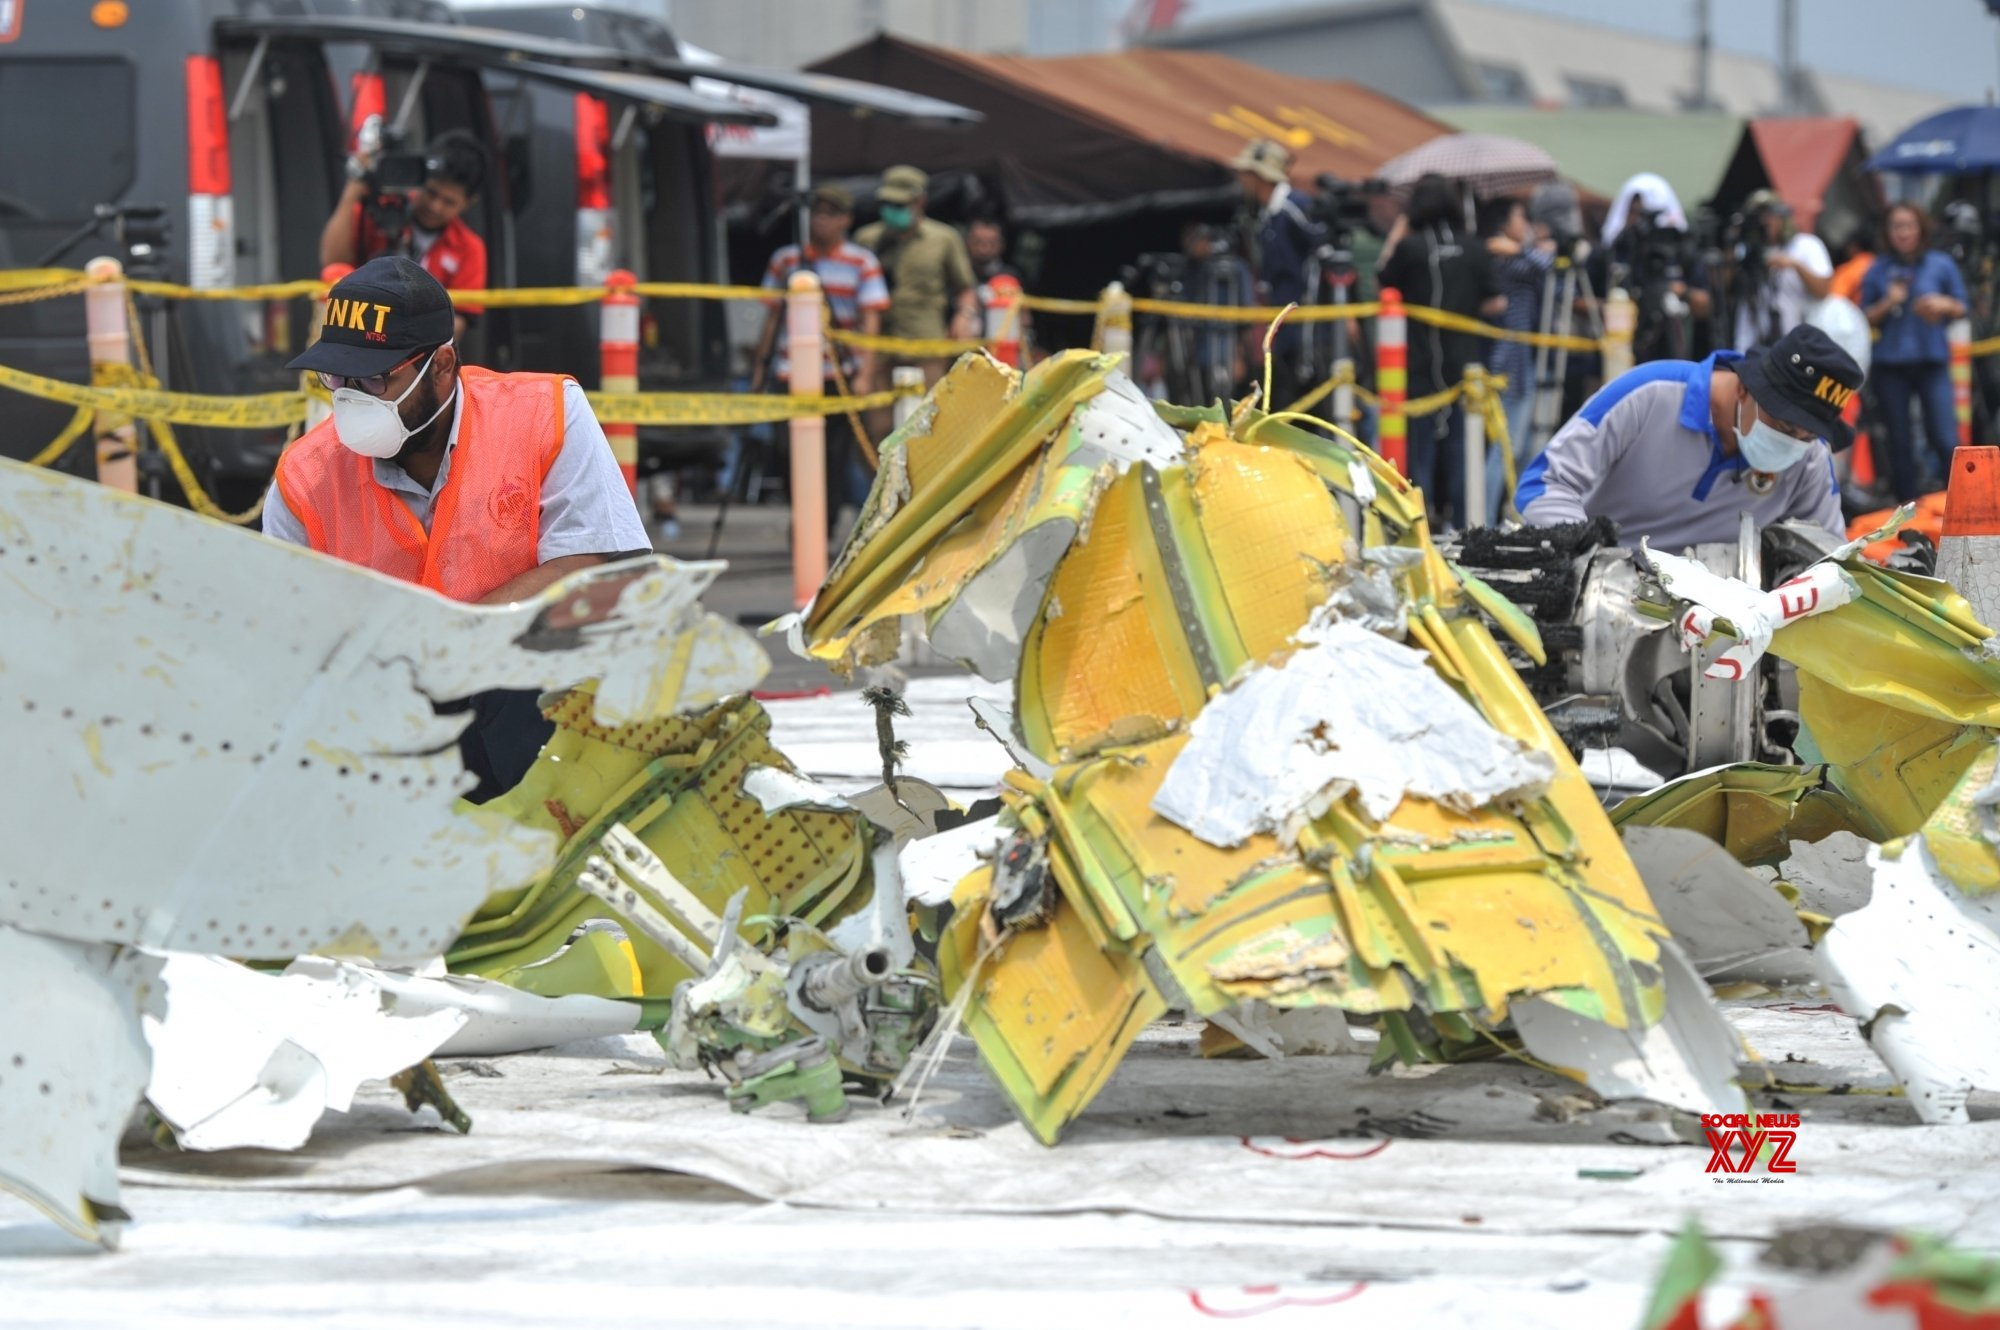 Indonesia recovers cockpit voice recorder of crashed plane